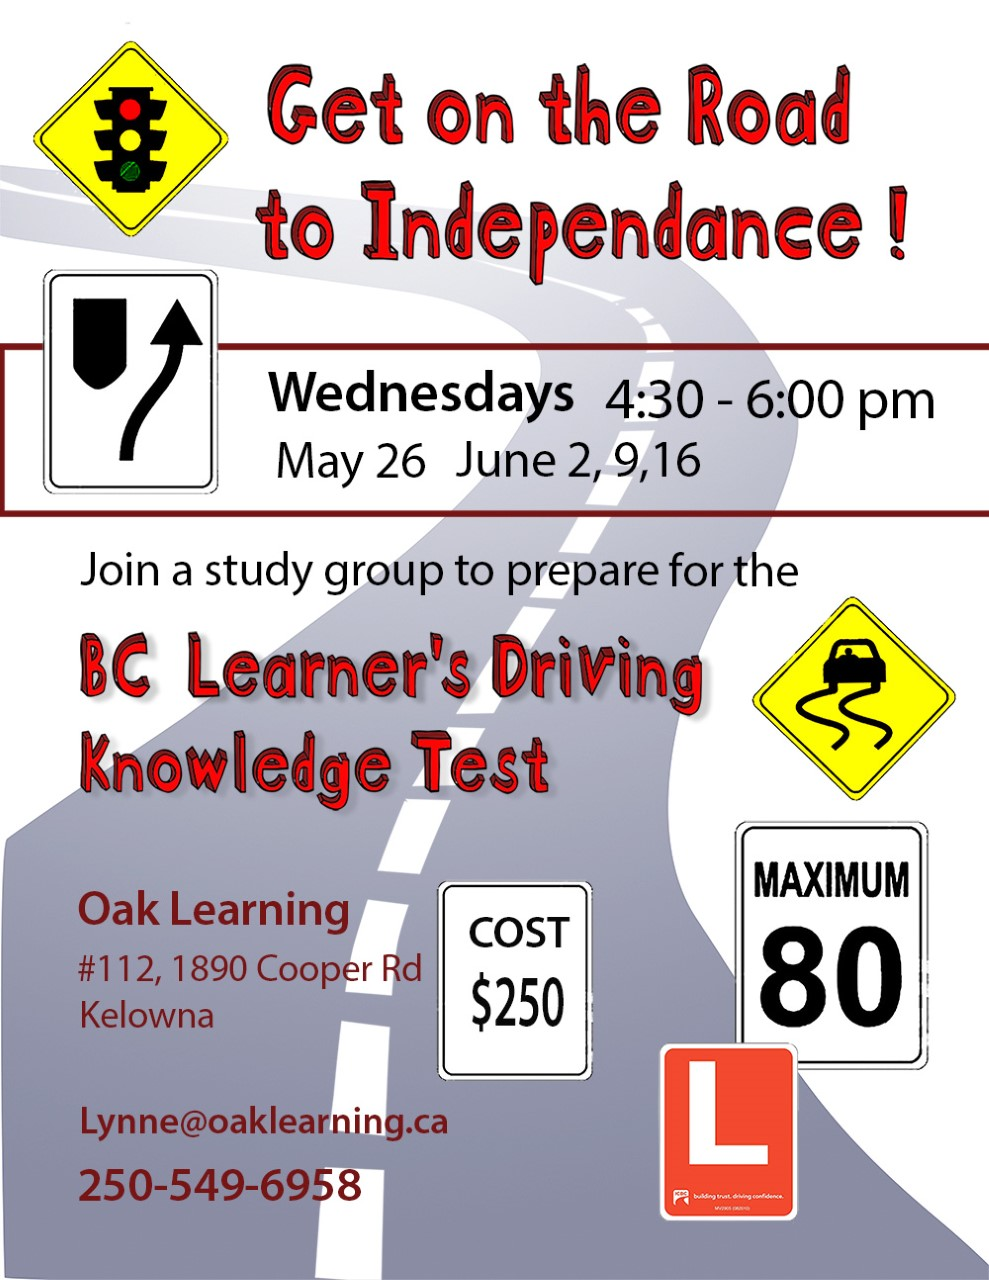 Get on the Road to Independence! - BC Learner's Driving Knowledge Test